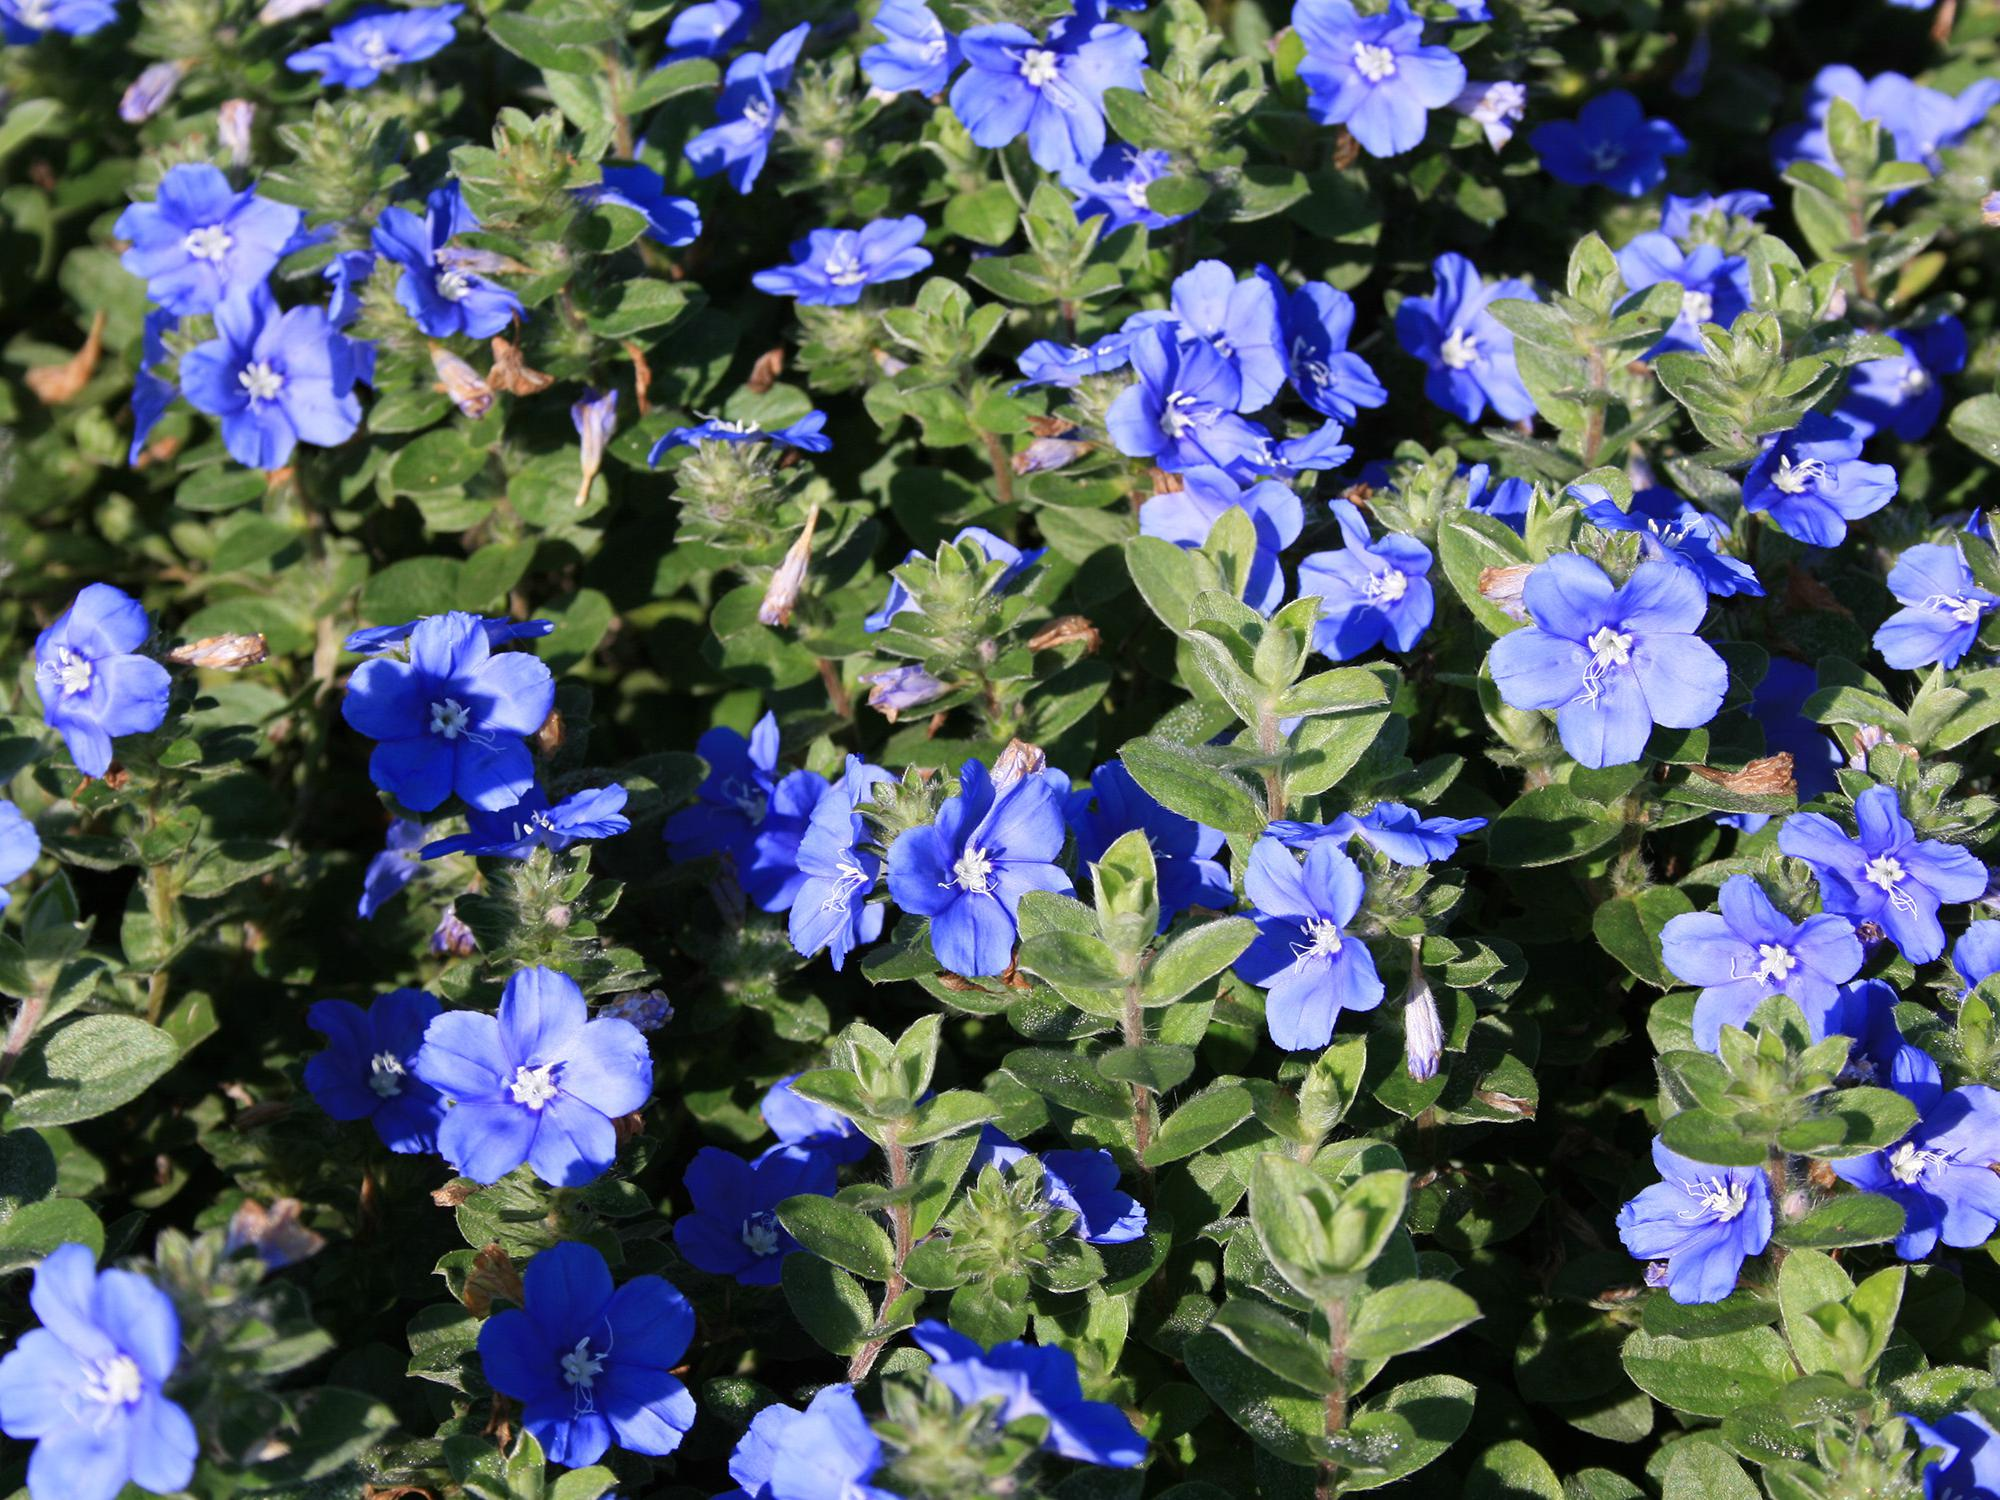 Dozens of blue flowers bloom above an uninterrupted sea of green leaves